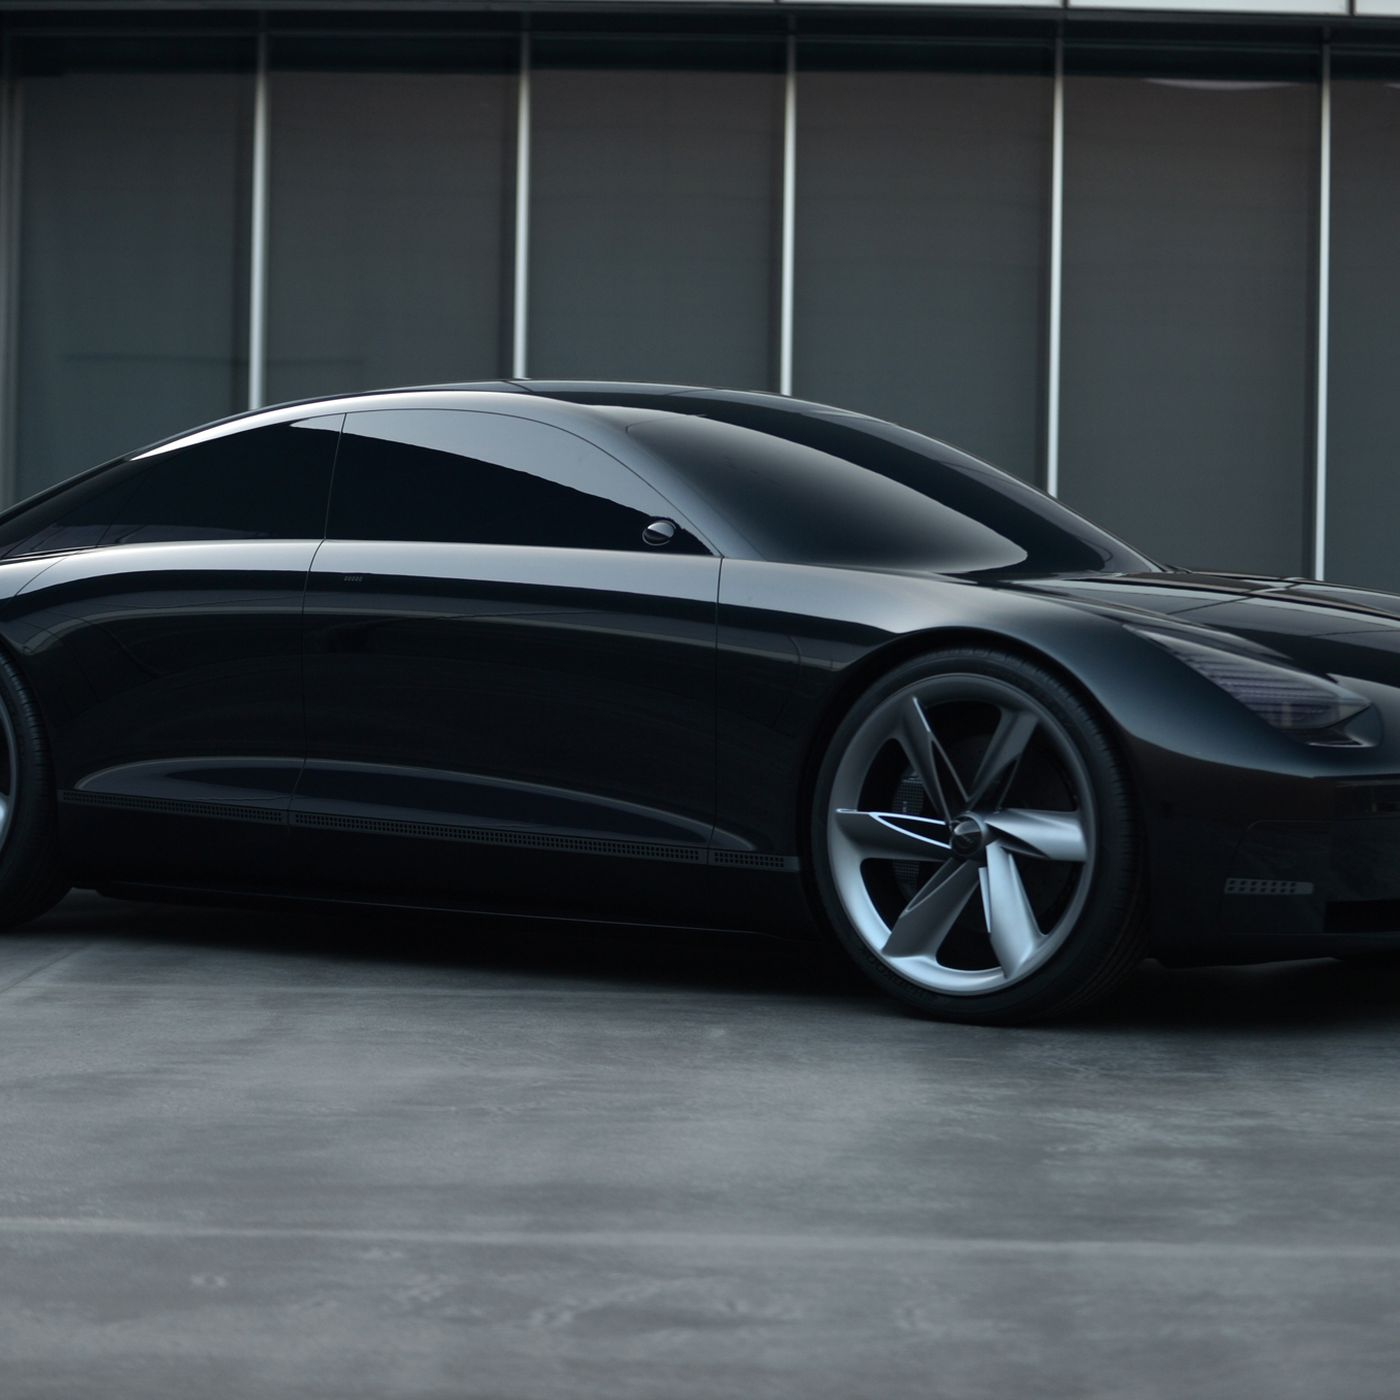 Hyundai S Prophecy Concept Looks Like The Baby Of A Porsche And A Model 3 The Verge